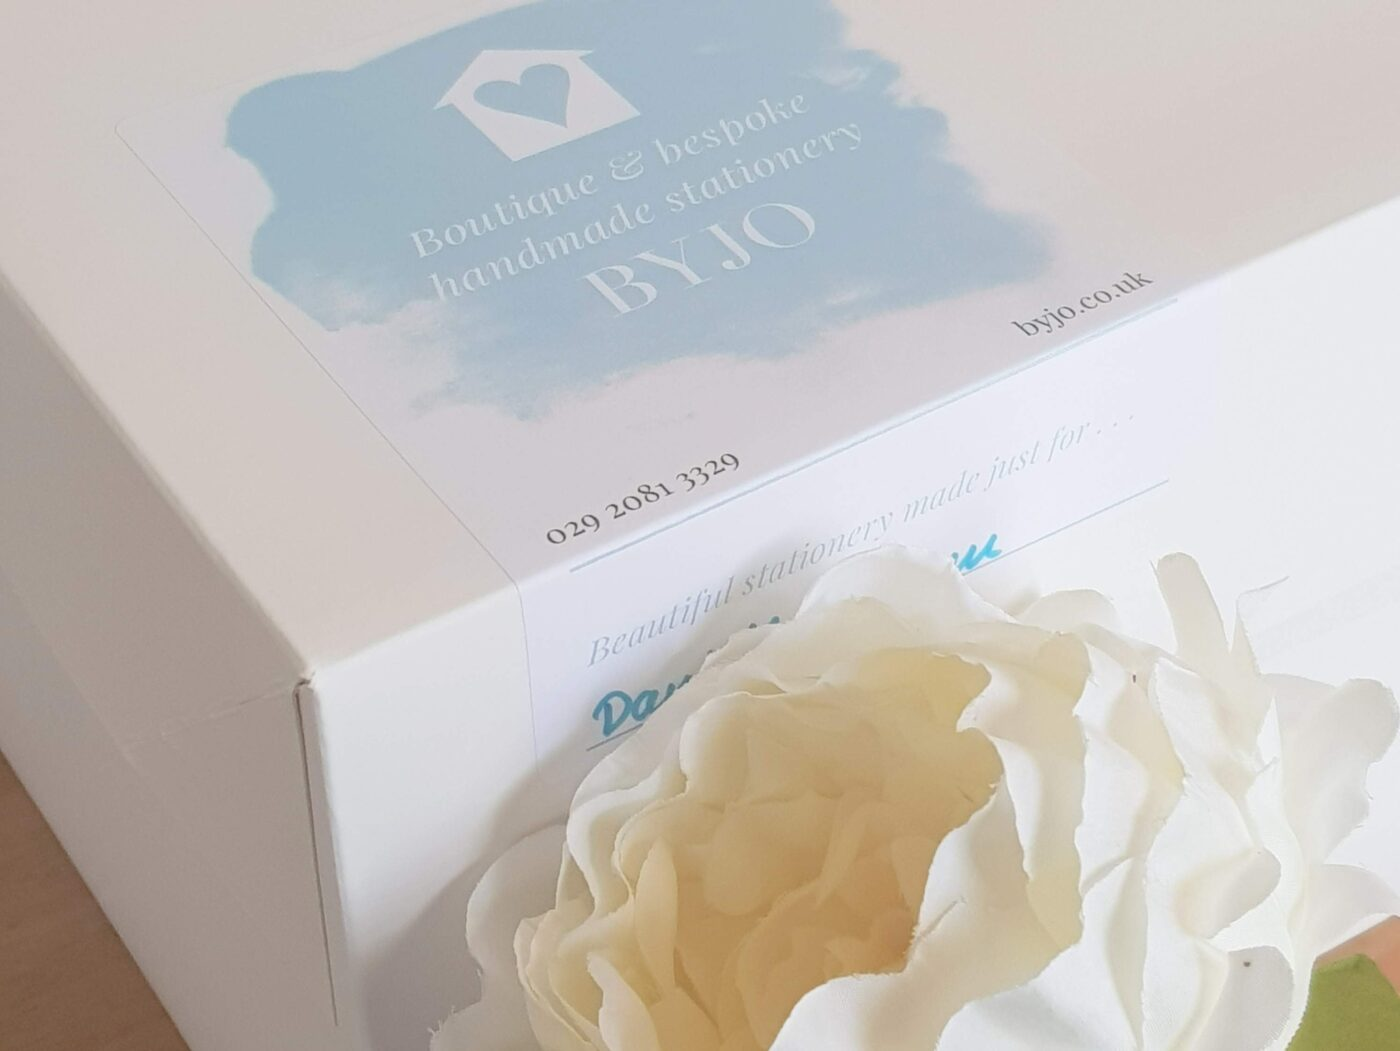 Wedding stationery boxed and ready for collection from the studio